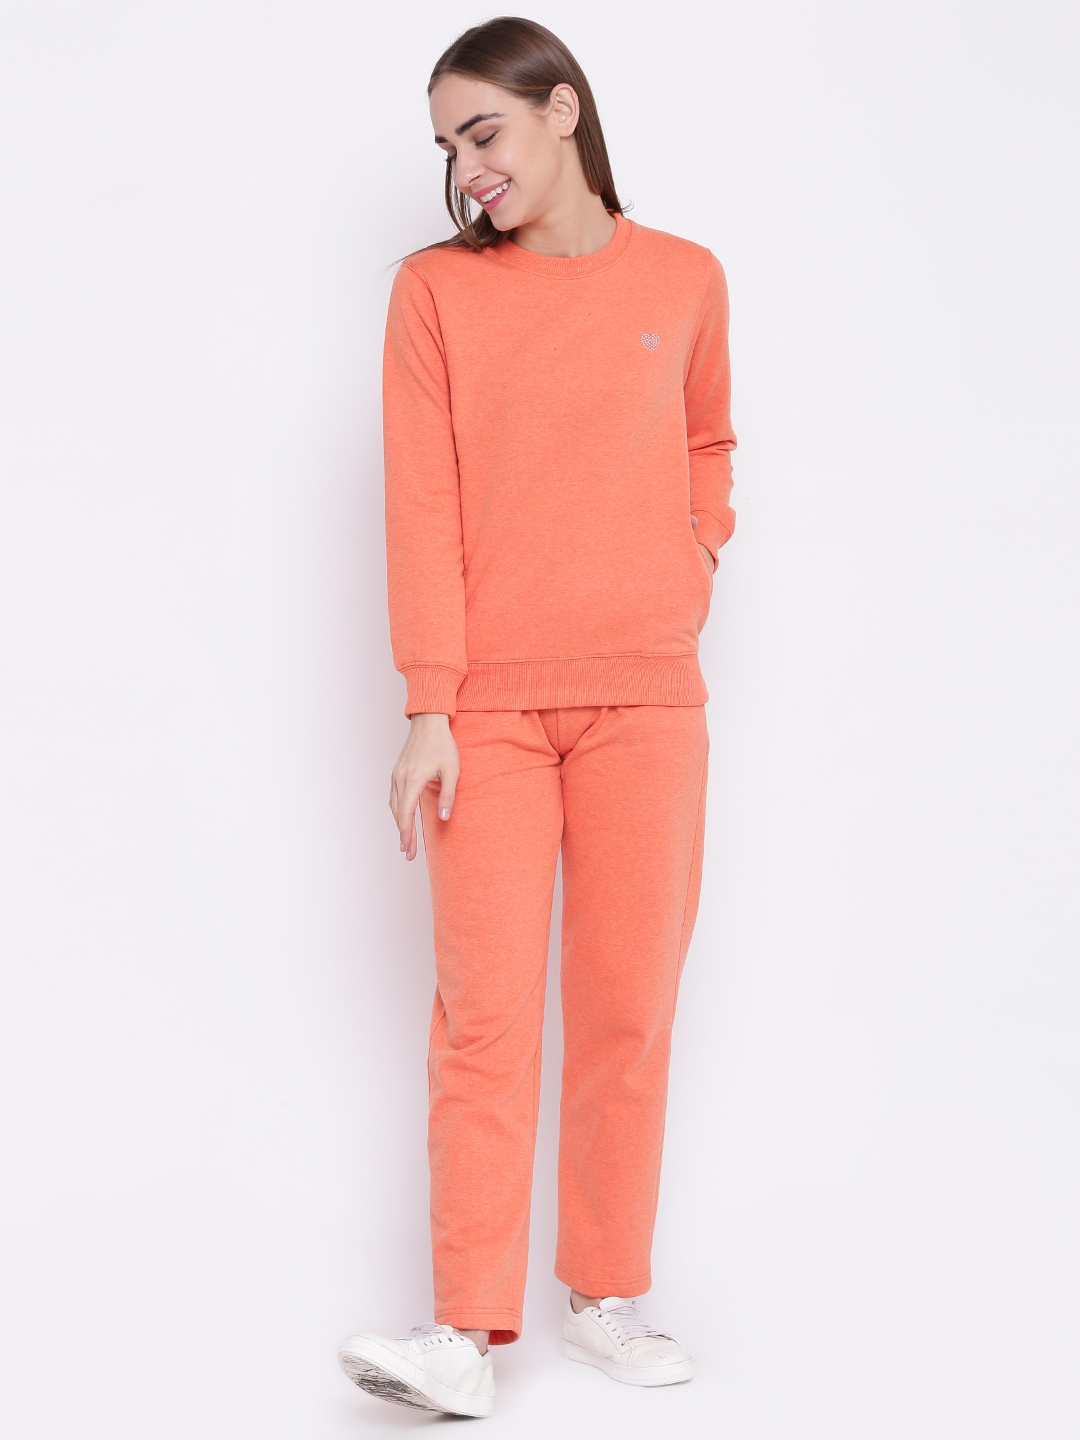 a98647fe3ee Buy Fort Collins Orange Tracksuit - Tracksuits for Women 2181758 ...